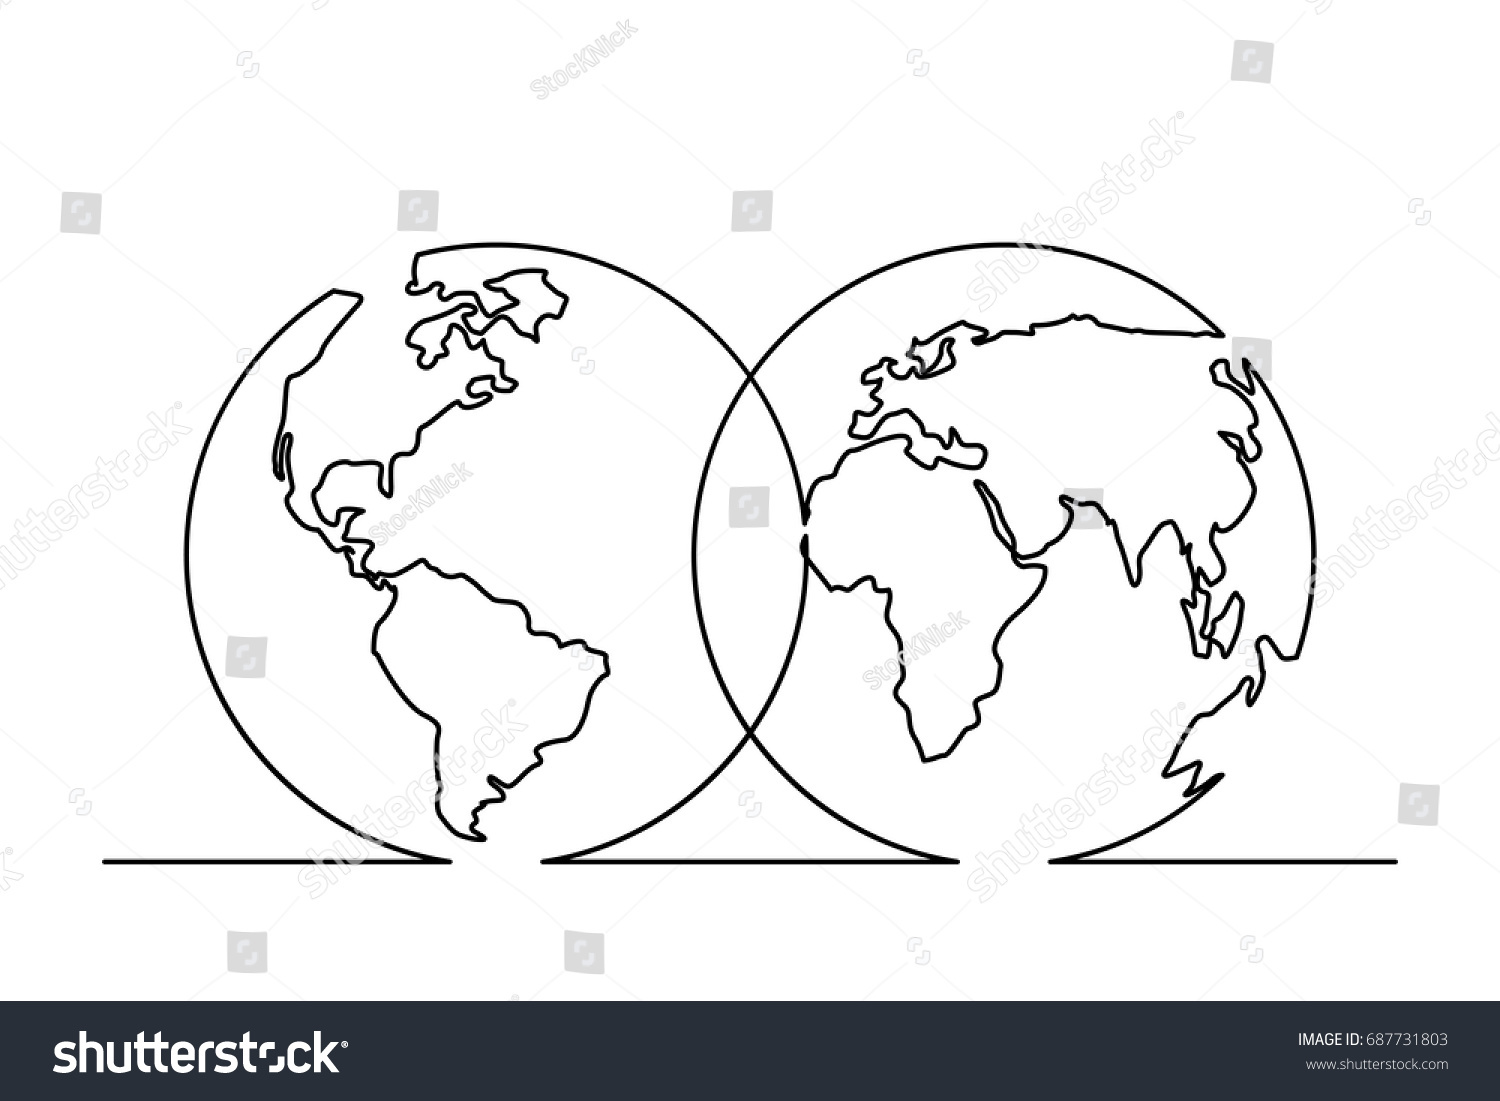 Line Drawing World Map : Continuous line drawing world map hemispheres stock vector